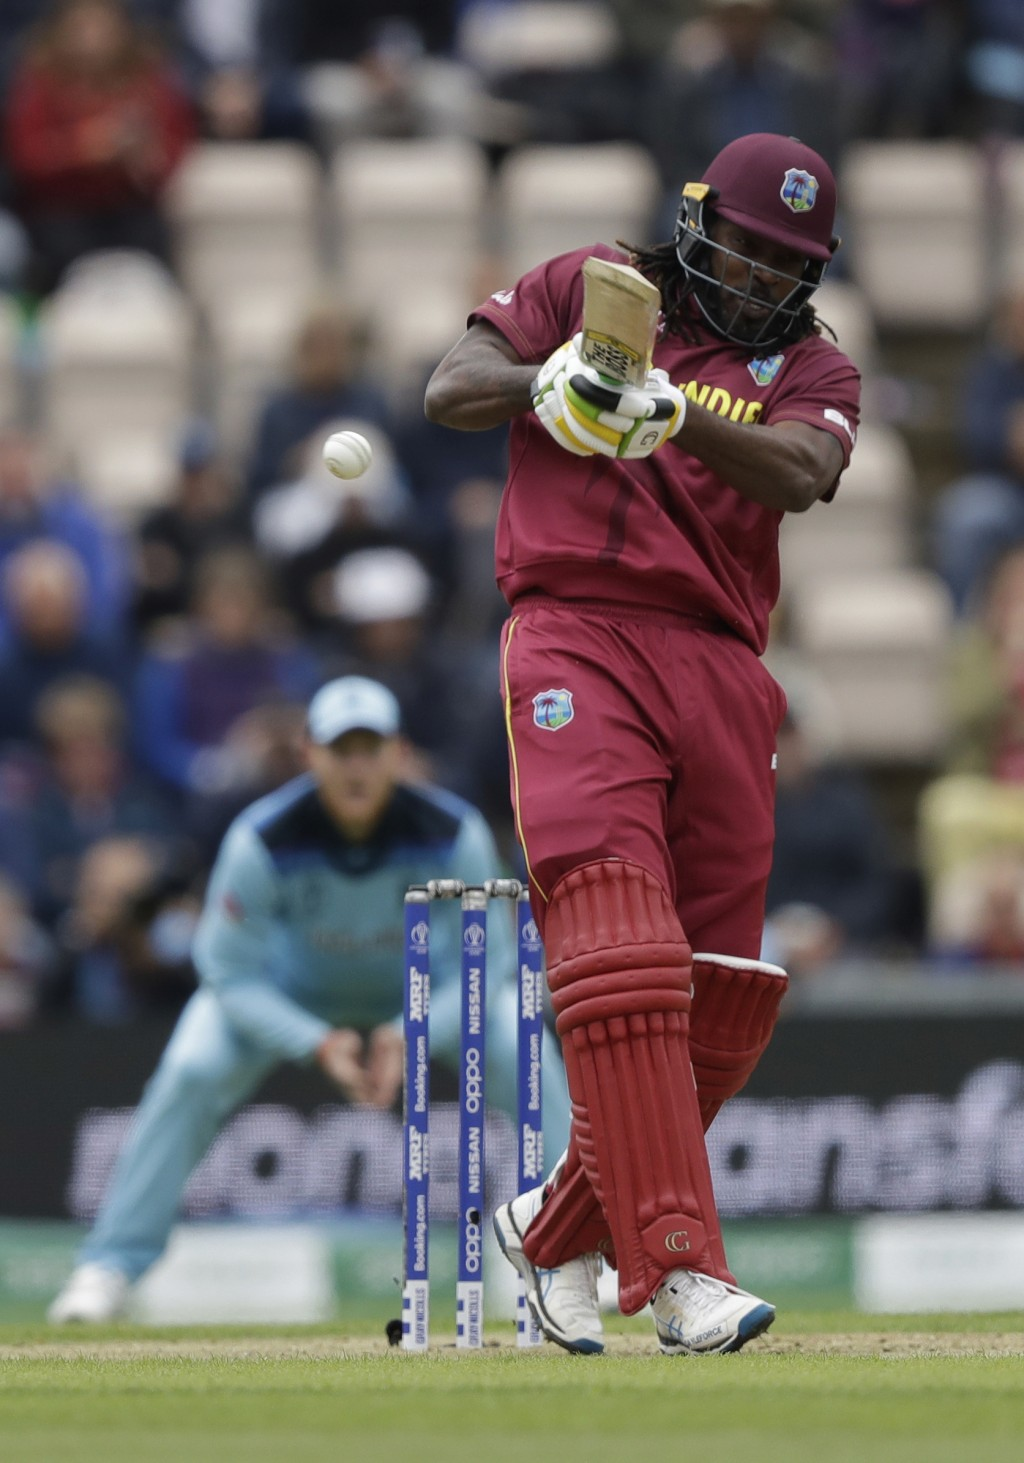 West Indies' Chris Gayle hits a four during the Cricket World Cup match between England and West Indies at the Hampshire Bowl in Southampton, England,